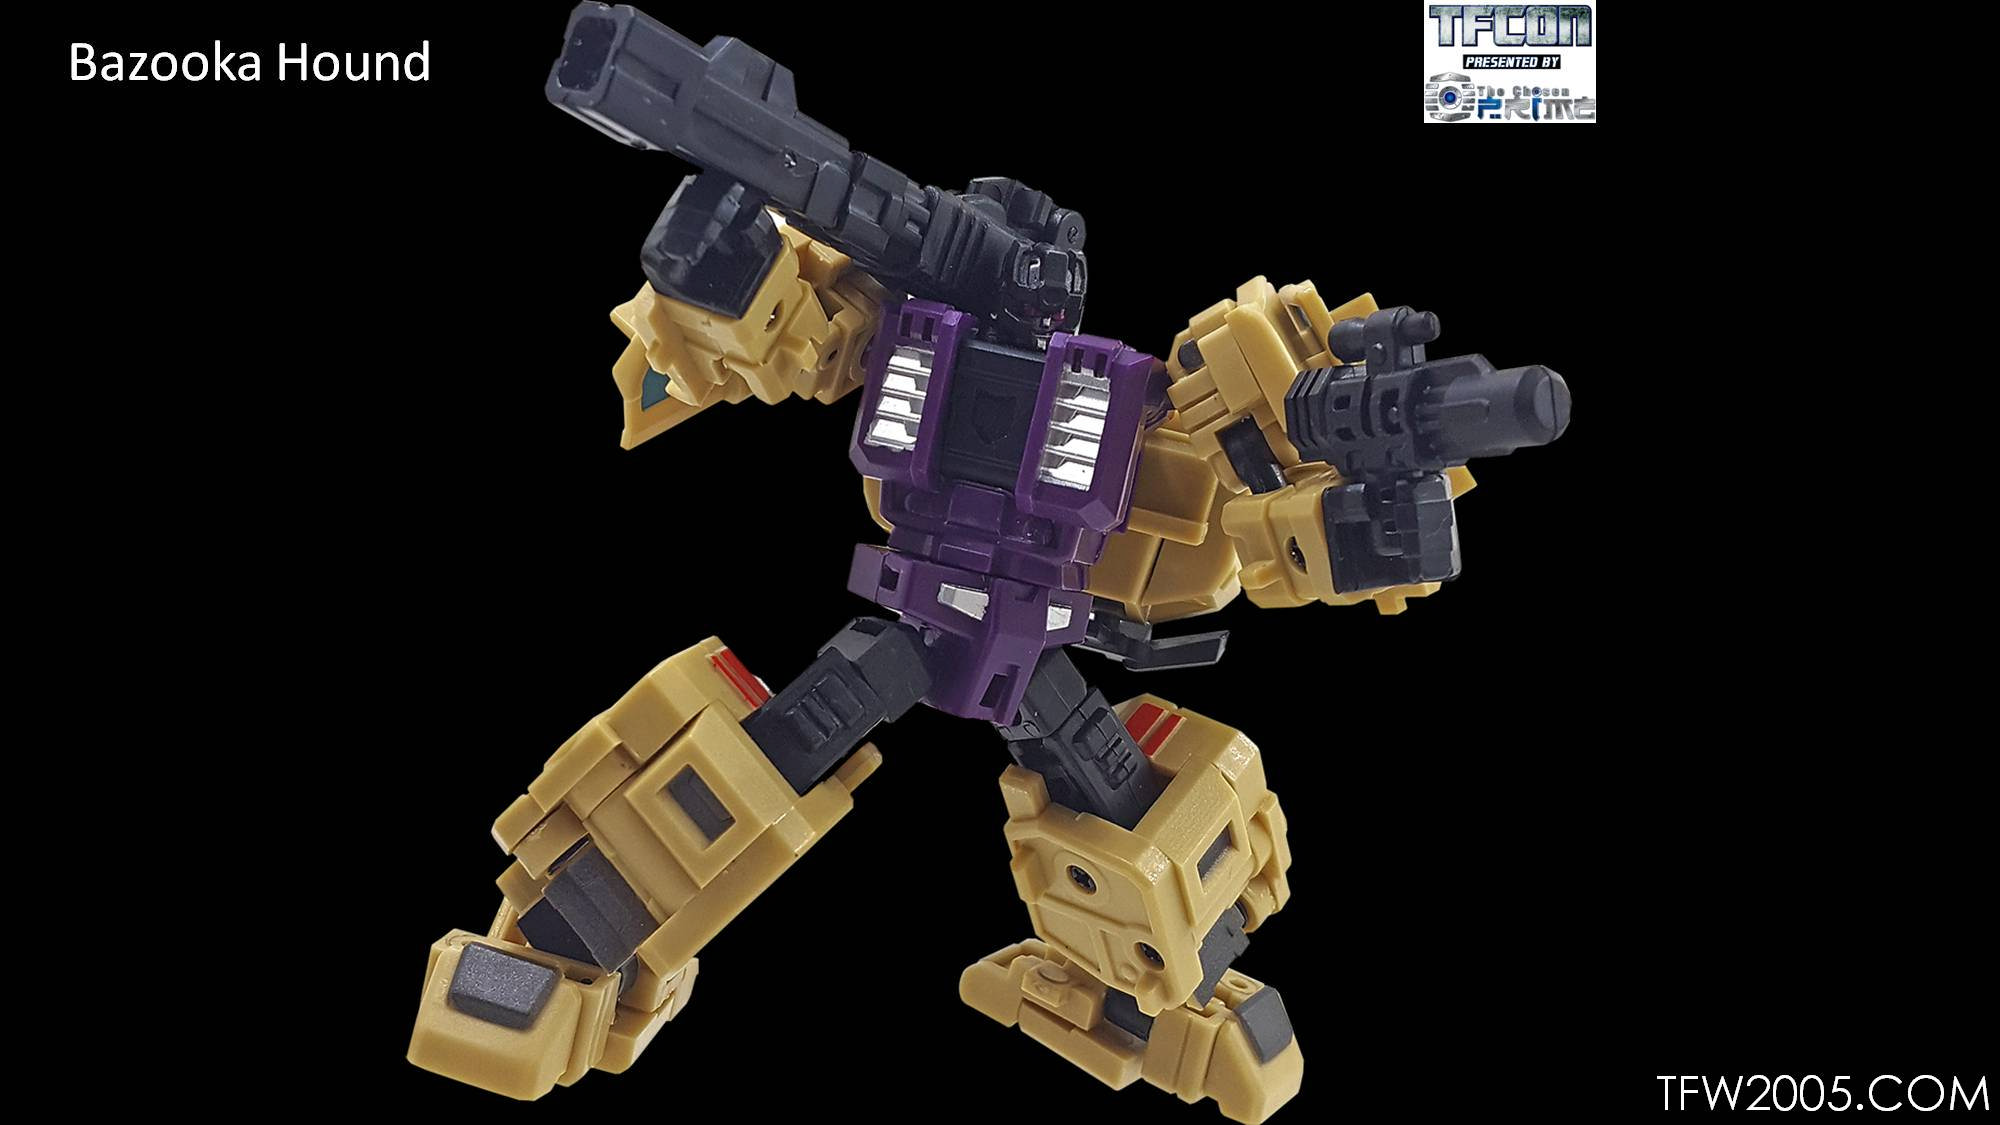 TFcon-2017-3rd-Party-058.jpg